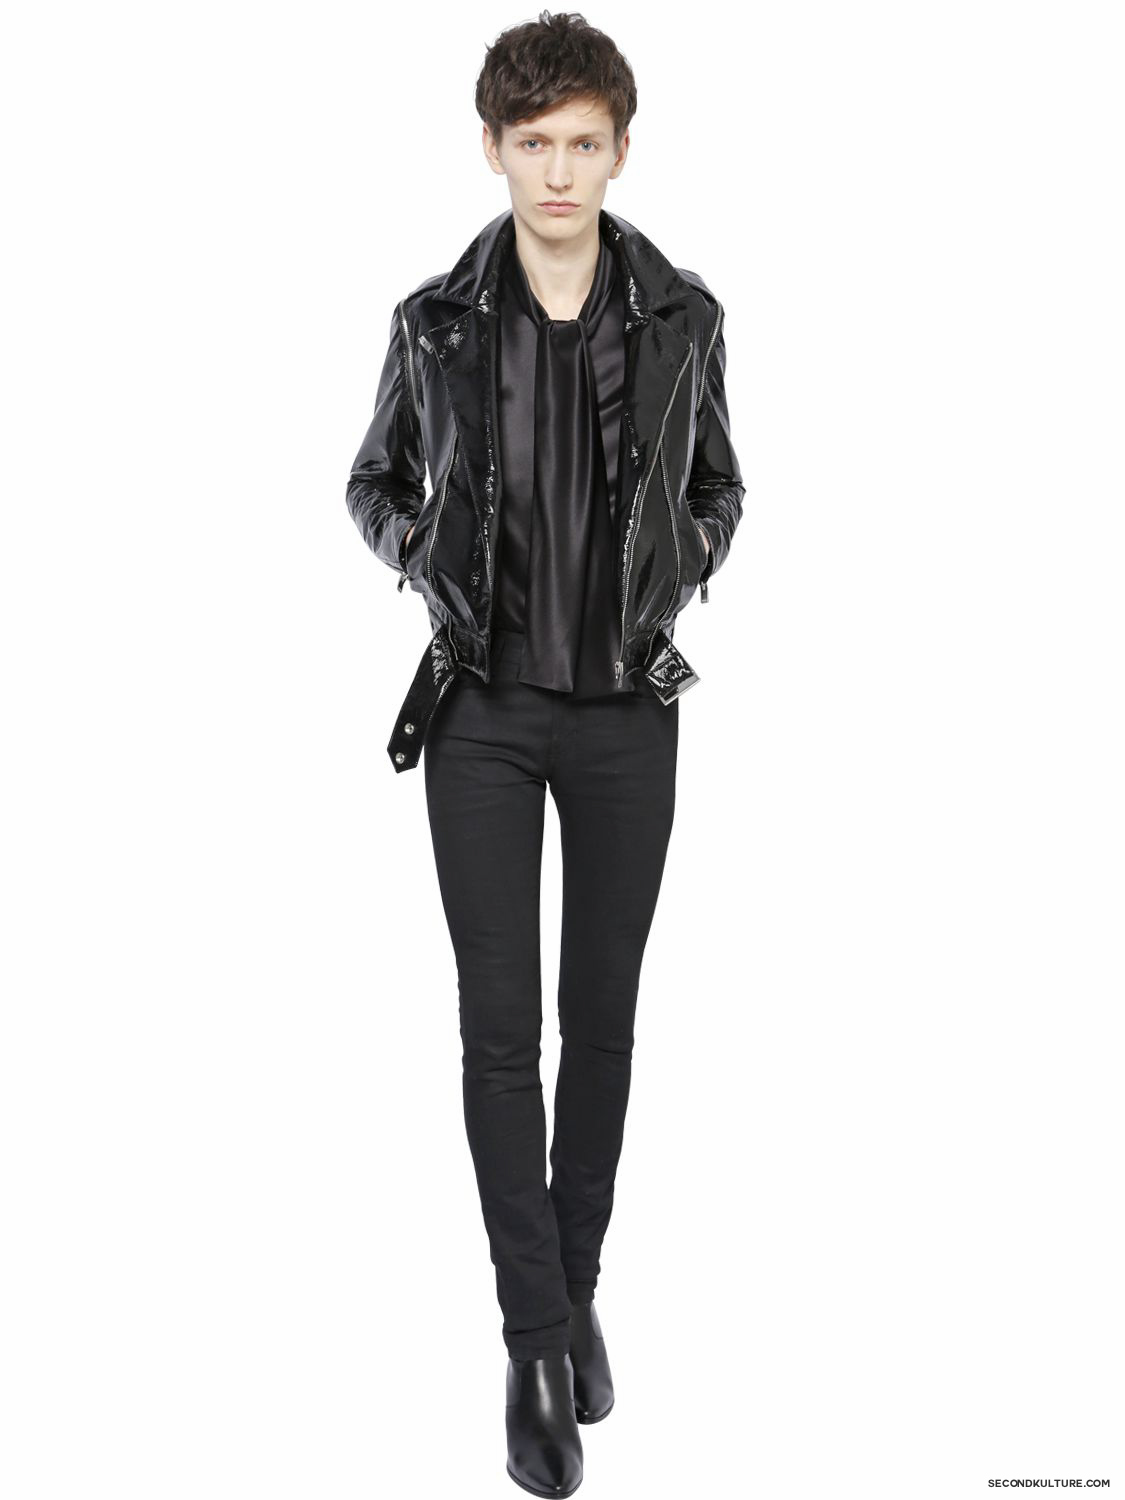 Saint-Laurent-Perfecto- Zipper-Vinyl-Biker-Jacket-Fall-Winter-2015-2